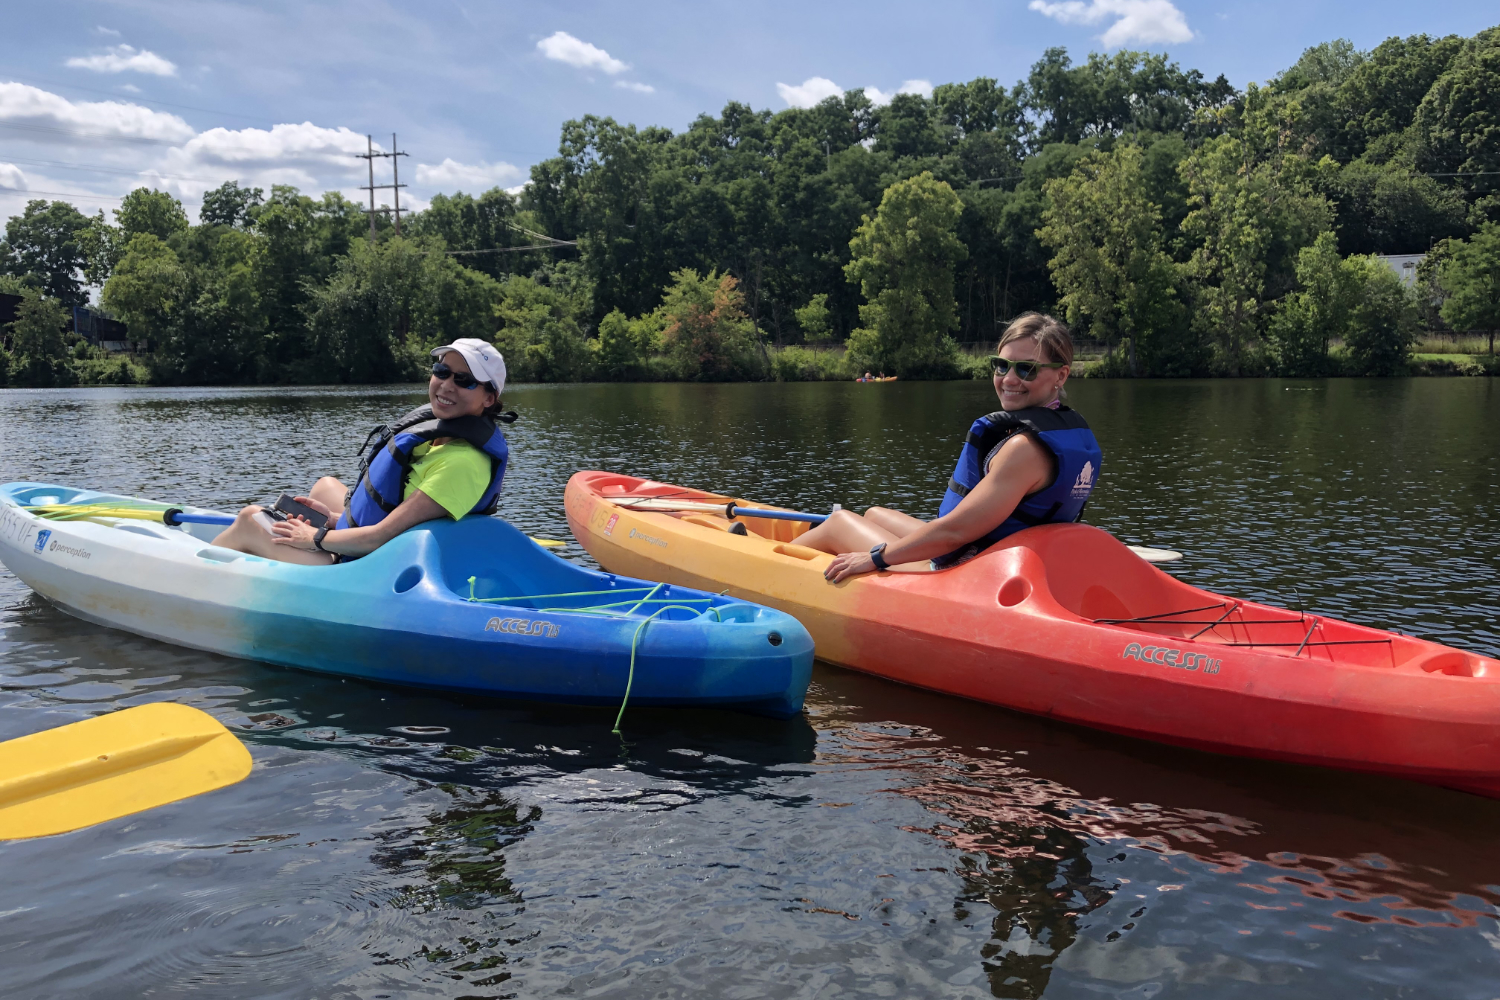 2 kayakers on a river